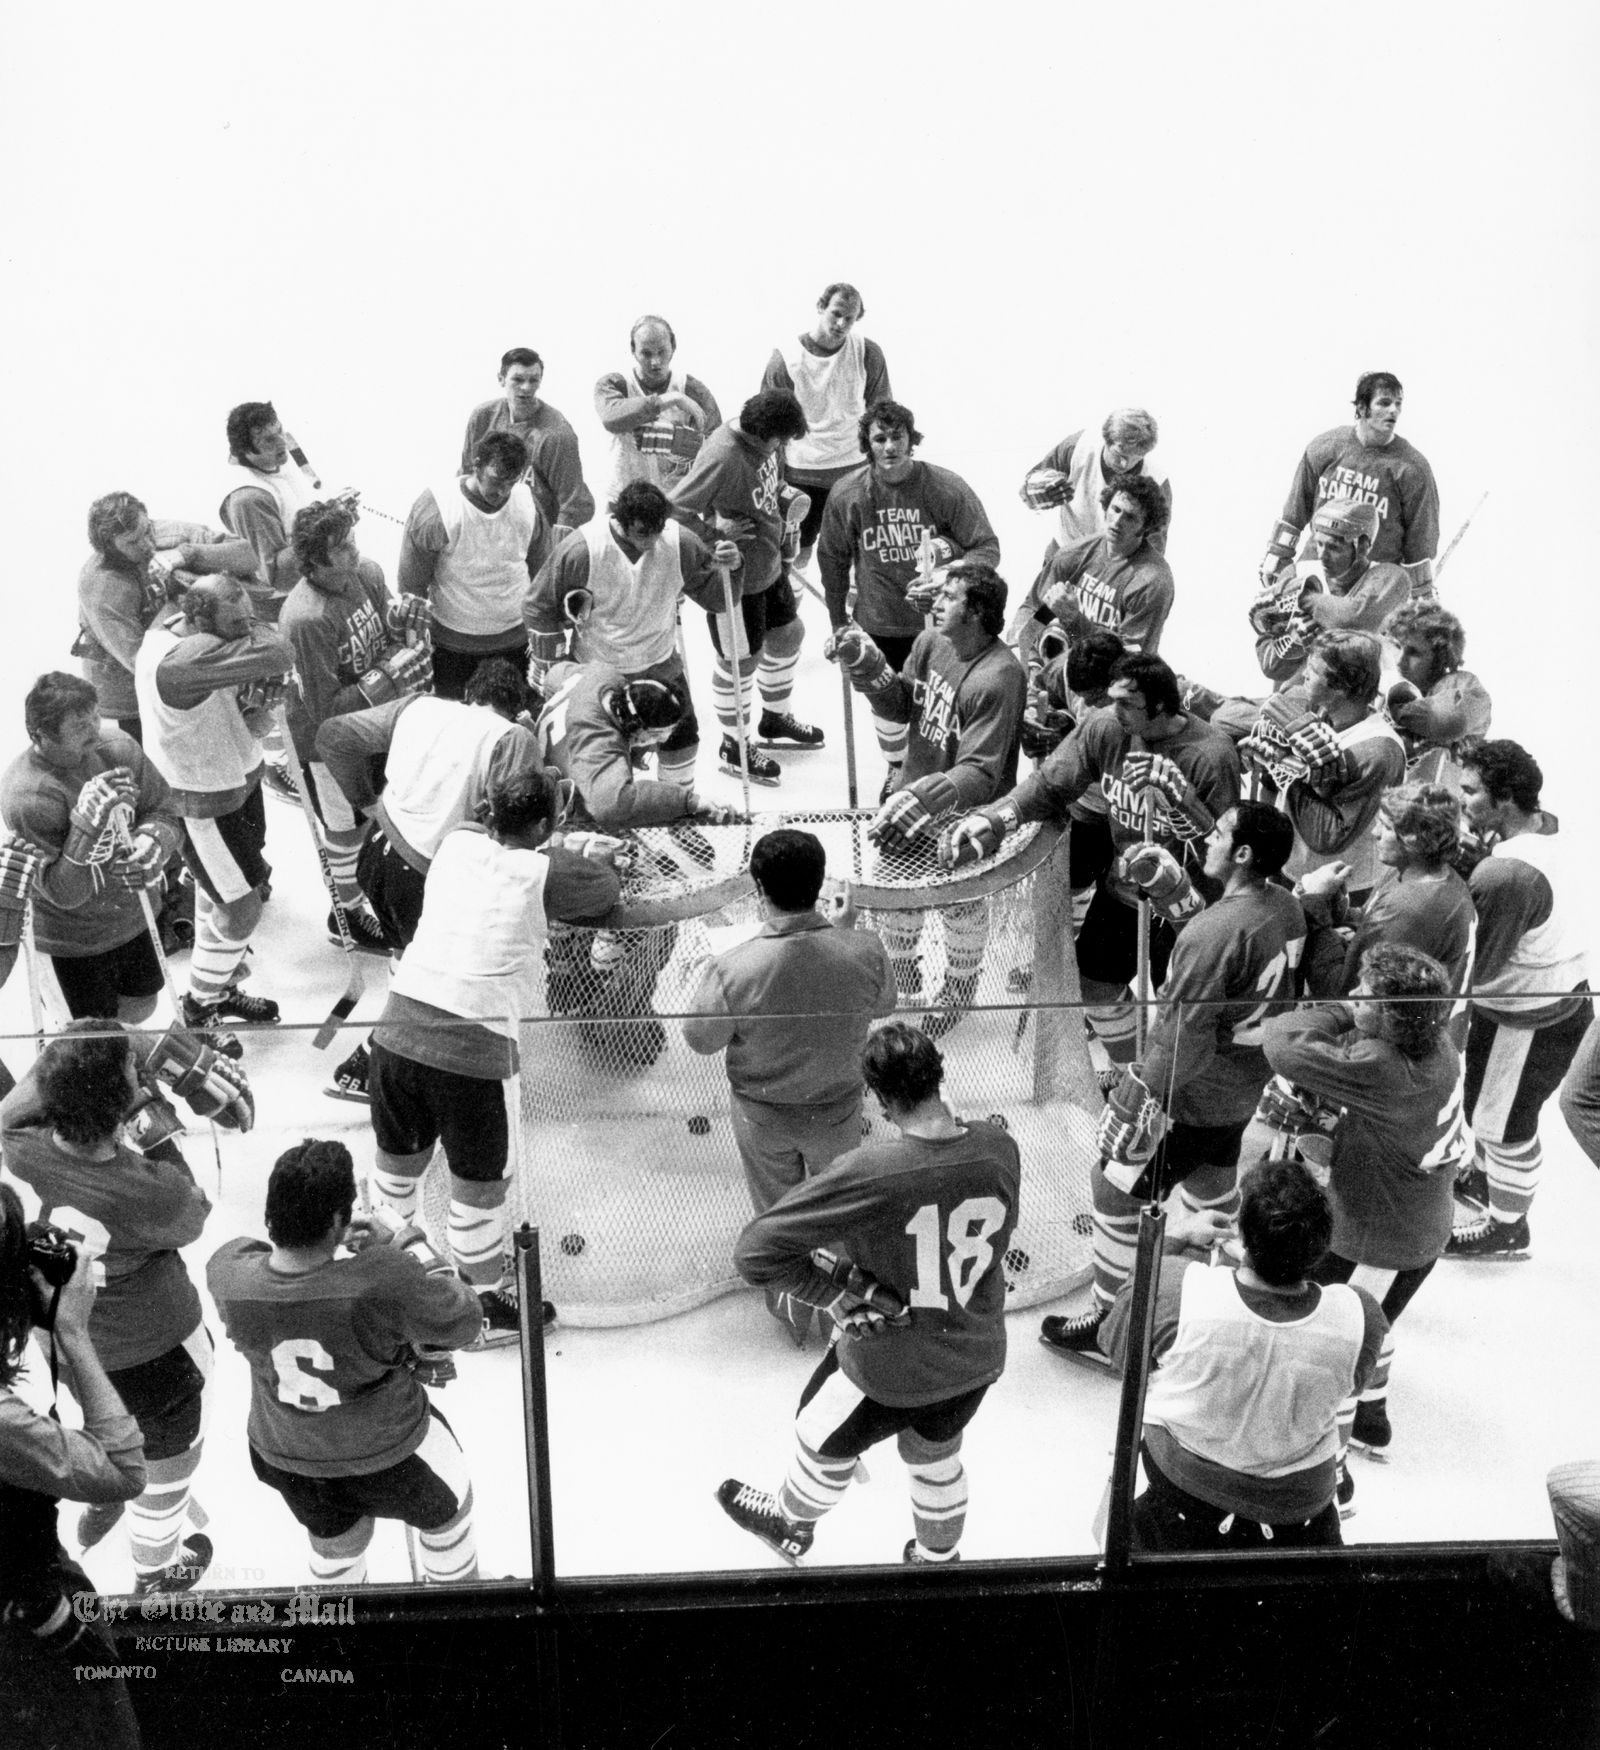 AUGUST 14, 1972 -- TORONTO -- TEAM CANADA TRAINING CAMP -- Team Canada players gather around net for discussion during first practice session at Maple Leaf Gardens in Toronto on August 14, 1972. Head coach Harry Sinden, centre, has his back to camera as he listens. Series against Russia starts Sept. 2, 1972 in Montreal. Photo by Barrie Davis / The Globe and Mail. Not published.